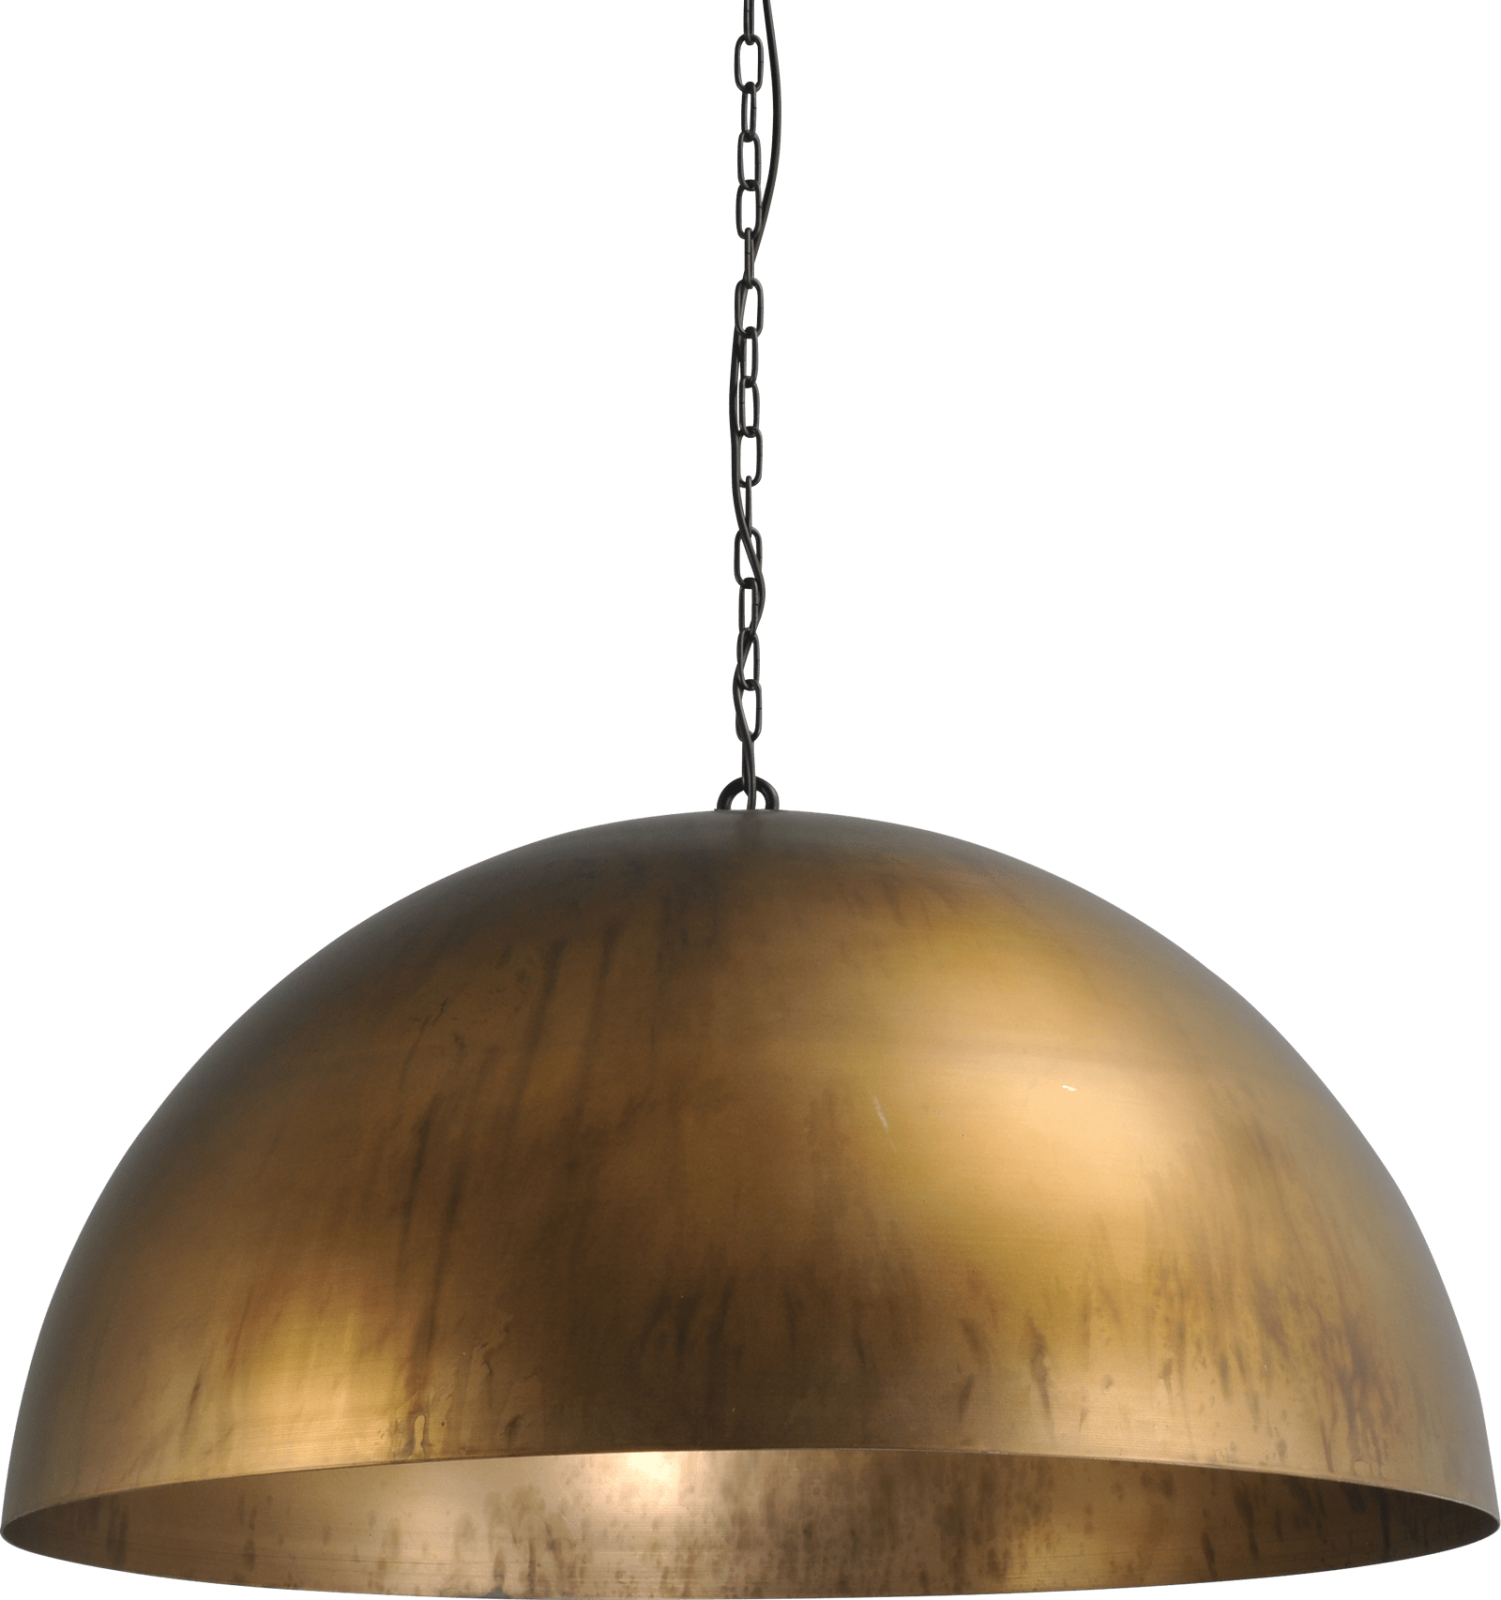 Larino Antique Brass HL LARINO D.100CM ANTIQUE BRASS OUTSIDE